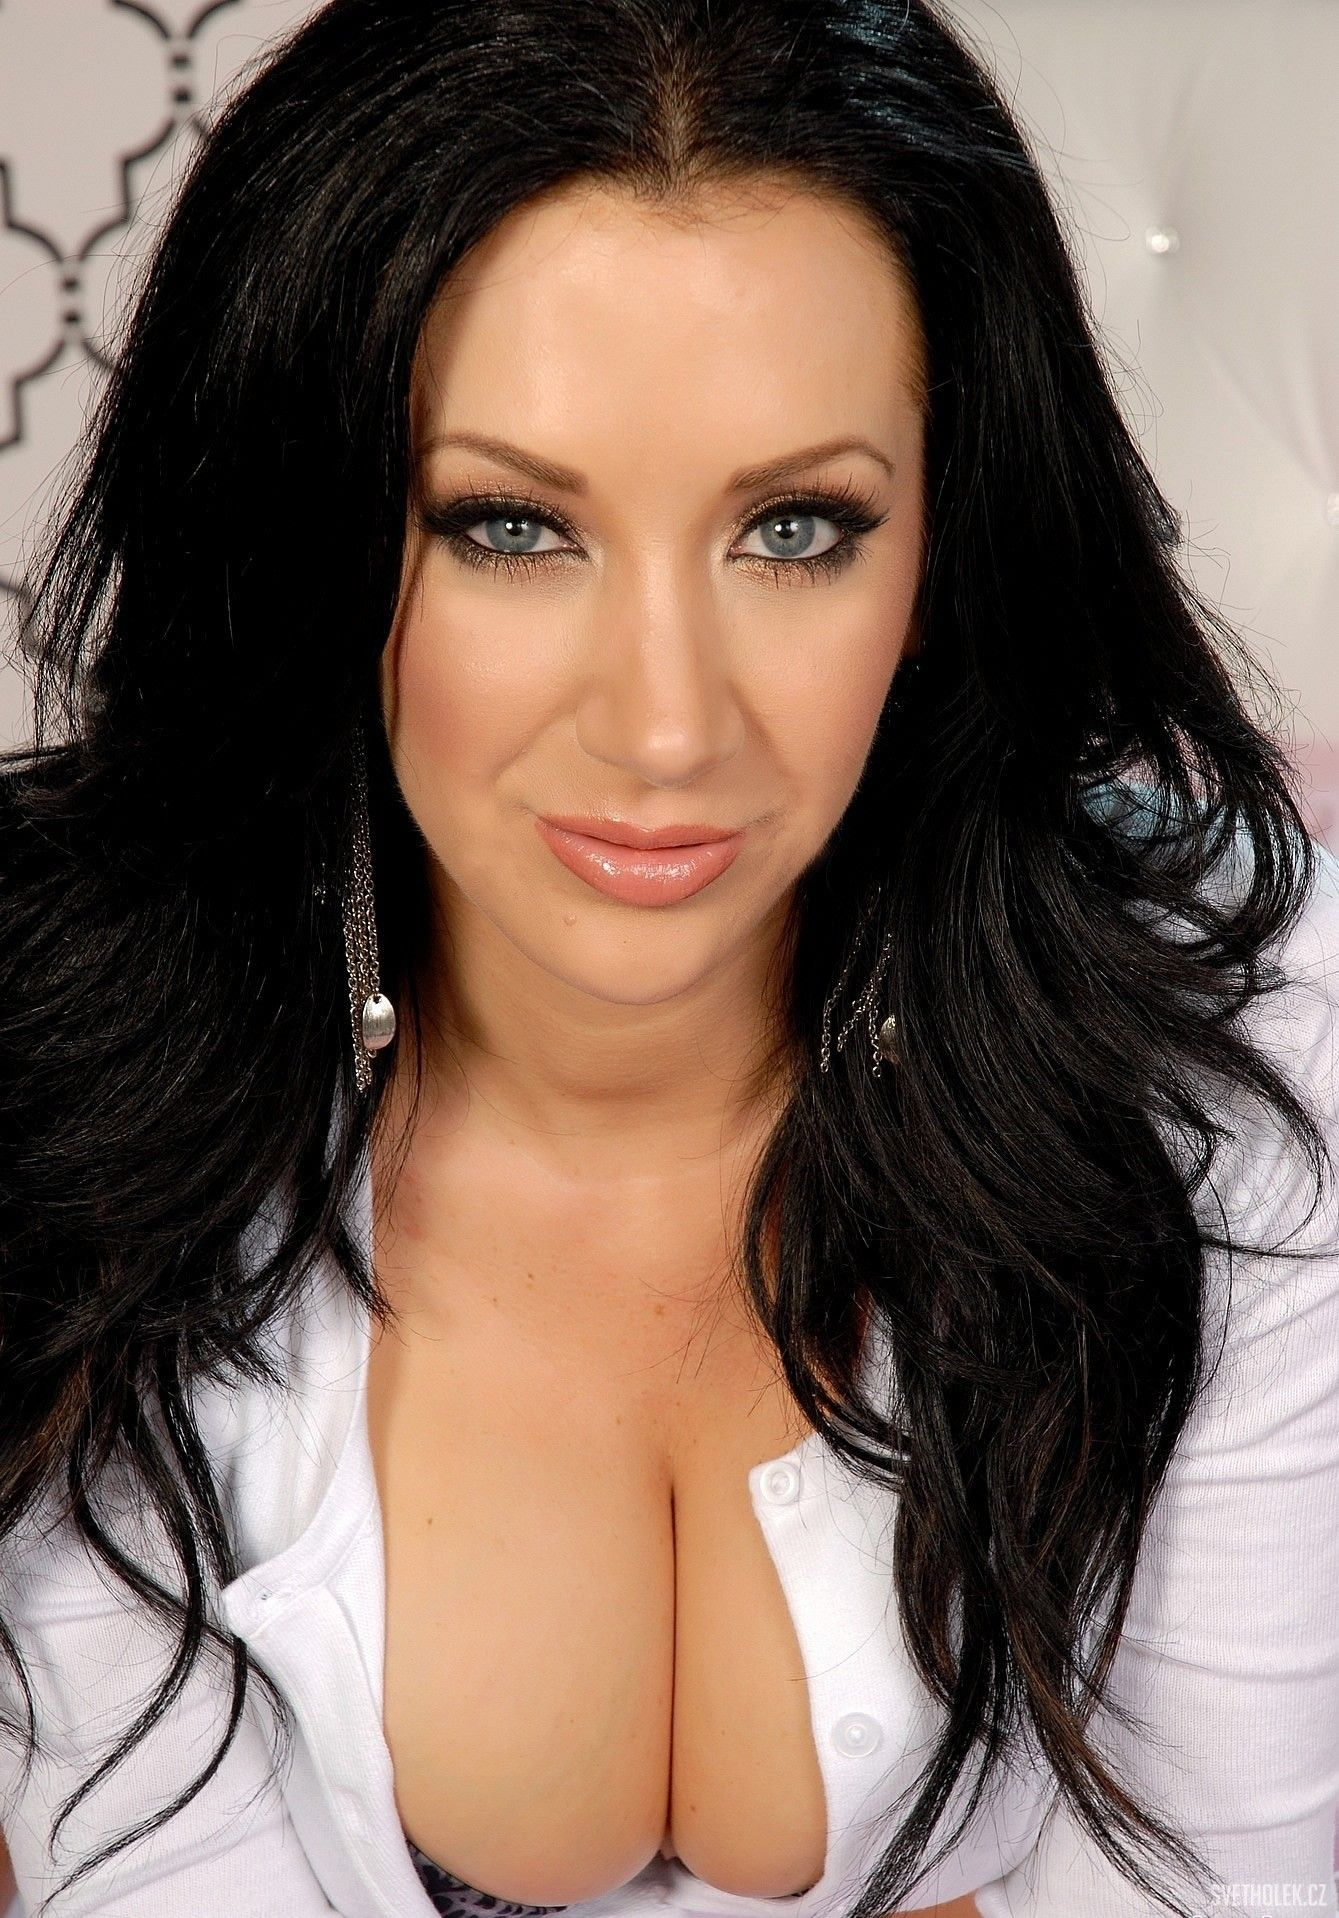 jayden jaymes sex videos